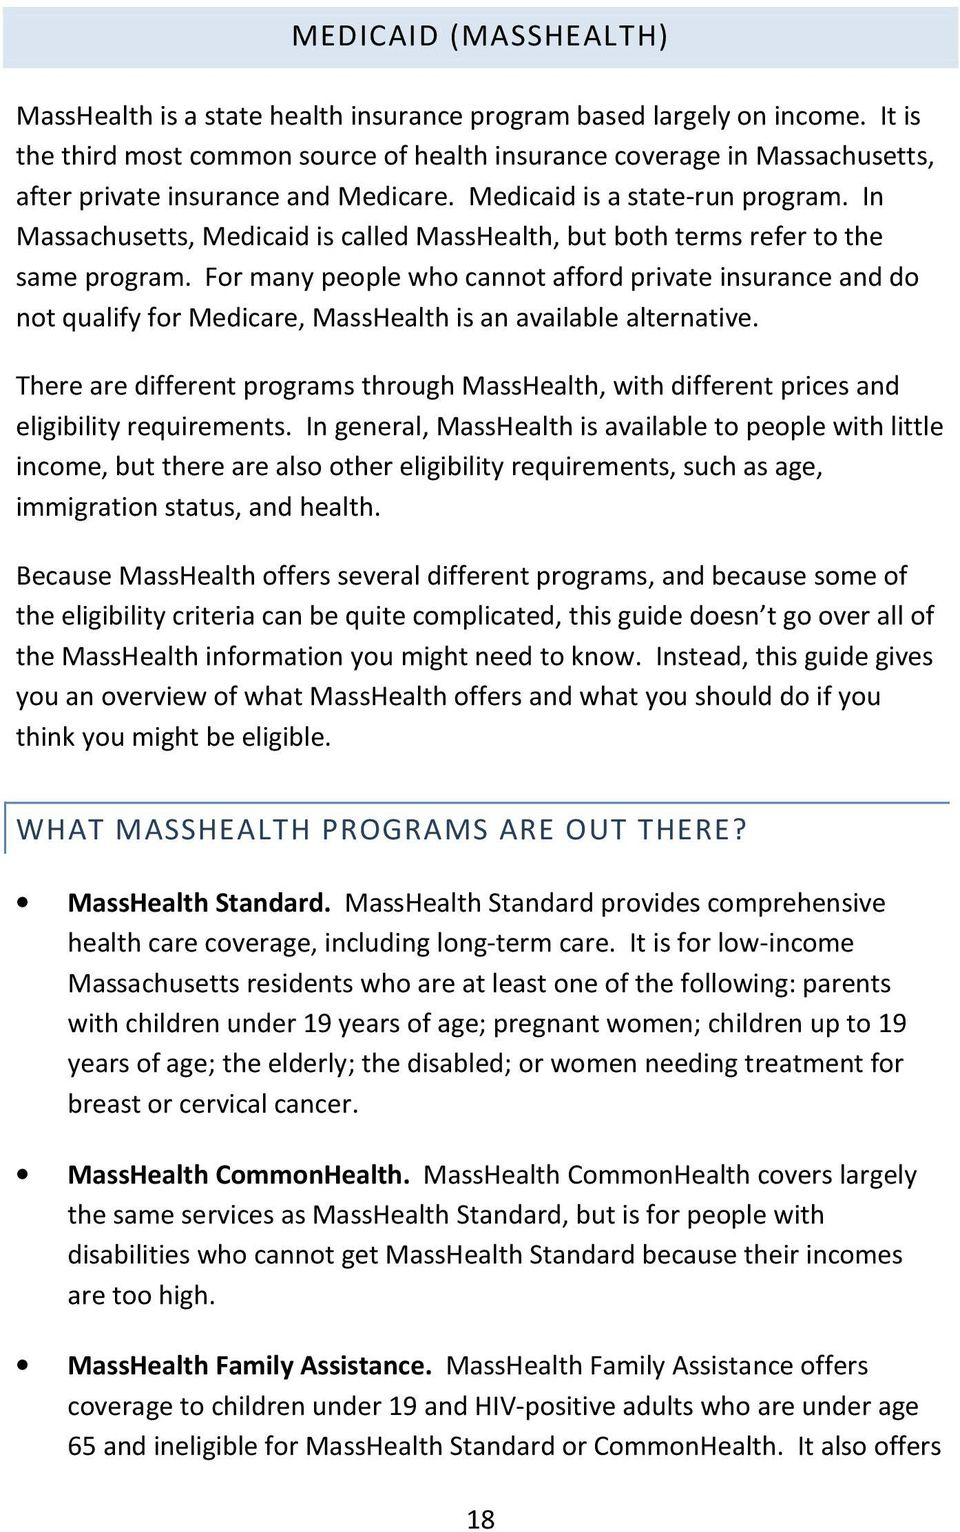 In Massachusetts, Medicaid is called MassHealth, but both terms refer to the same program.